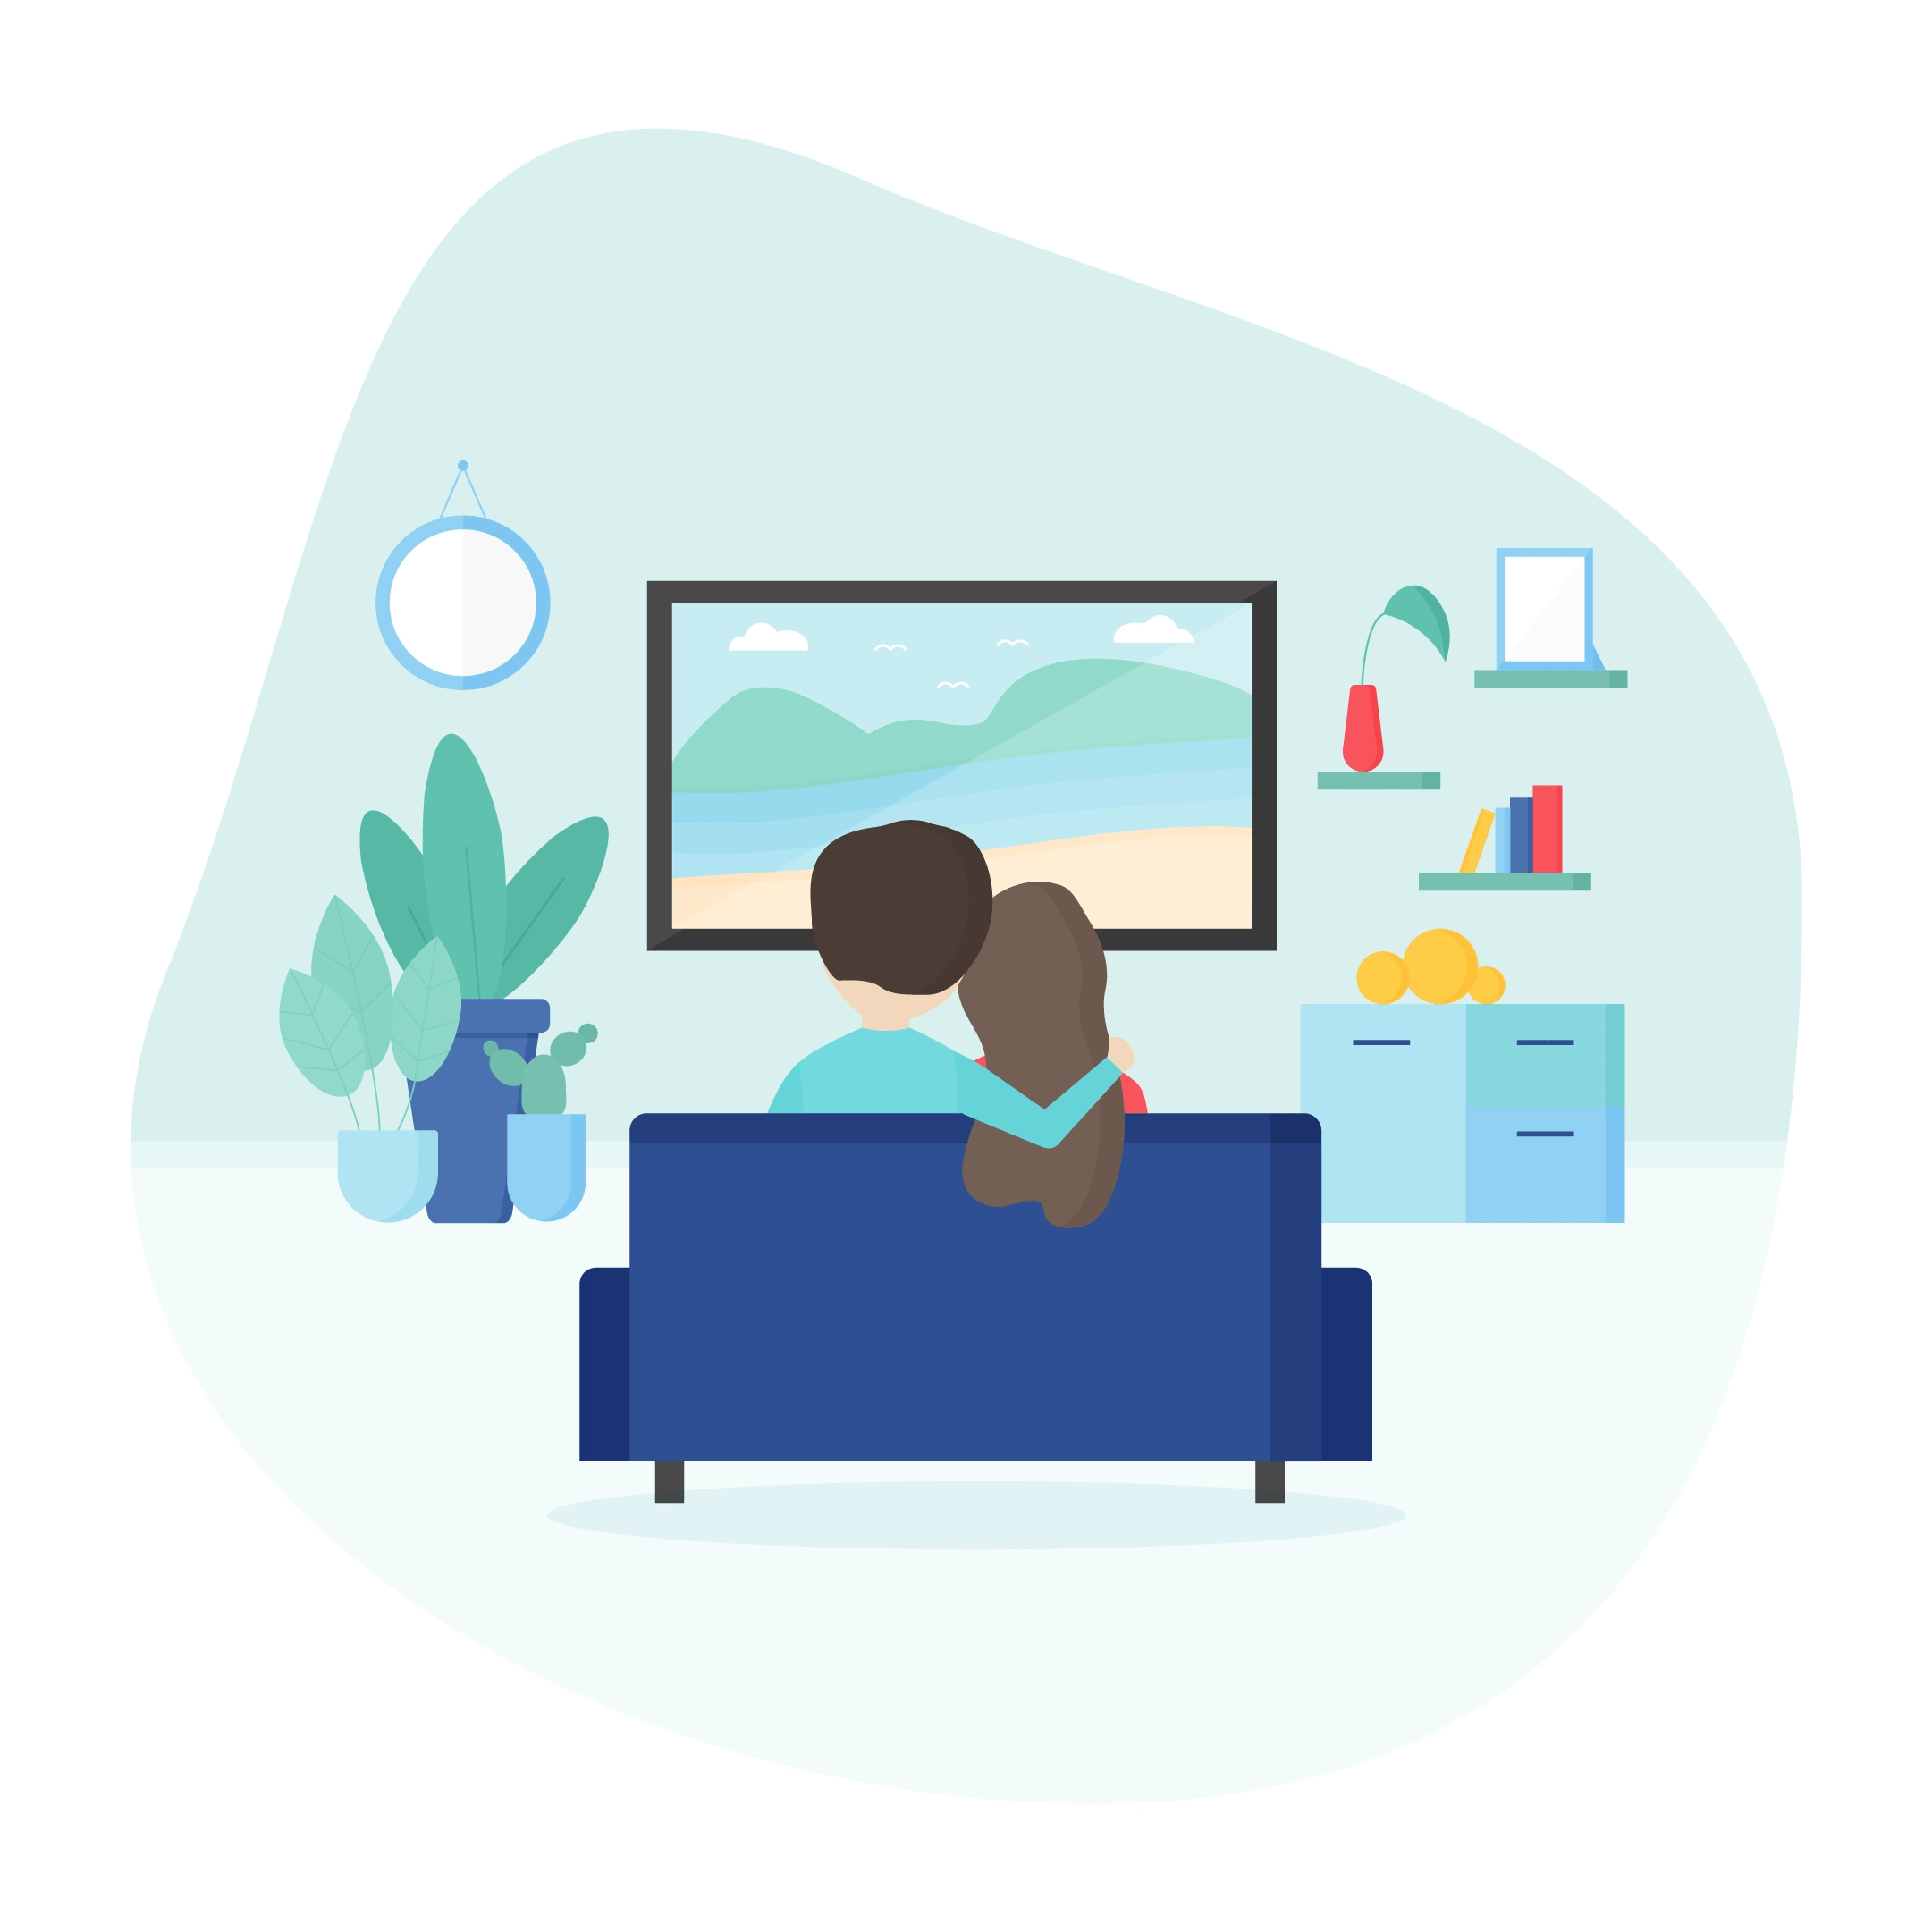 Vector illustration of a couple in the living room hugging while sitting on the sofa and watching photos on tv in flat design style